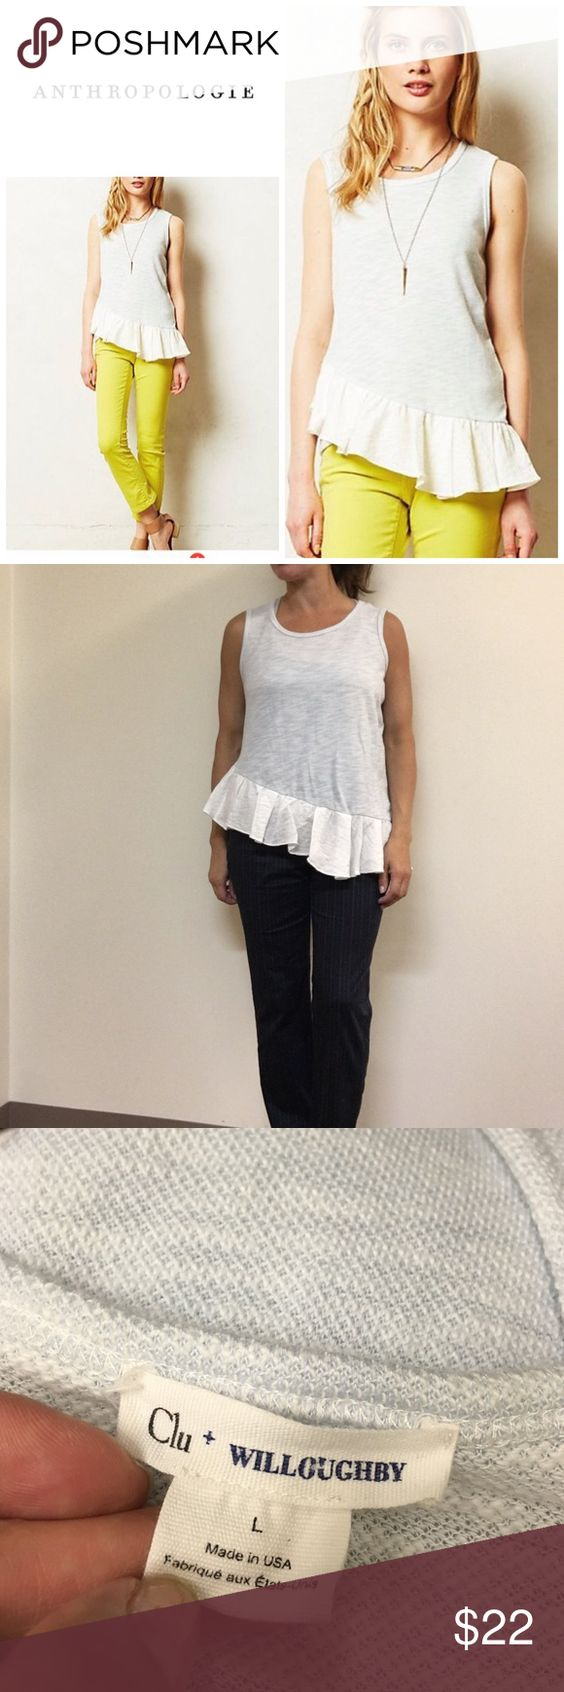 Anthropologie Caloundra tank - clu+ willoughby Size L and will fit a 8-12 . Asymetric hemline . Ruffled trim . Will bundle for 10% off . In excellent condition. . Looks great layered with a sweater over it. Color - light blue and white Anthropologie Tops